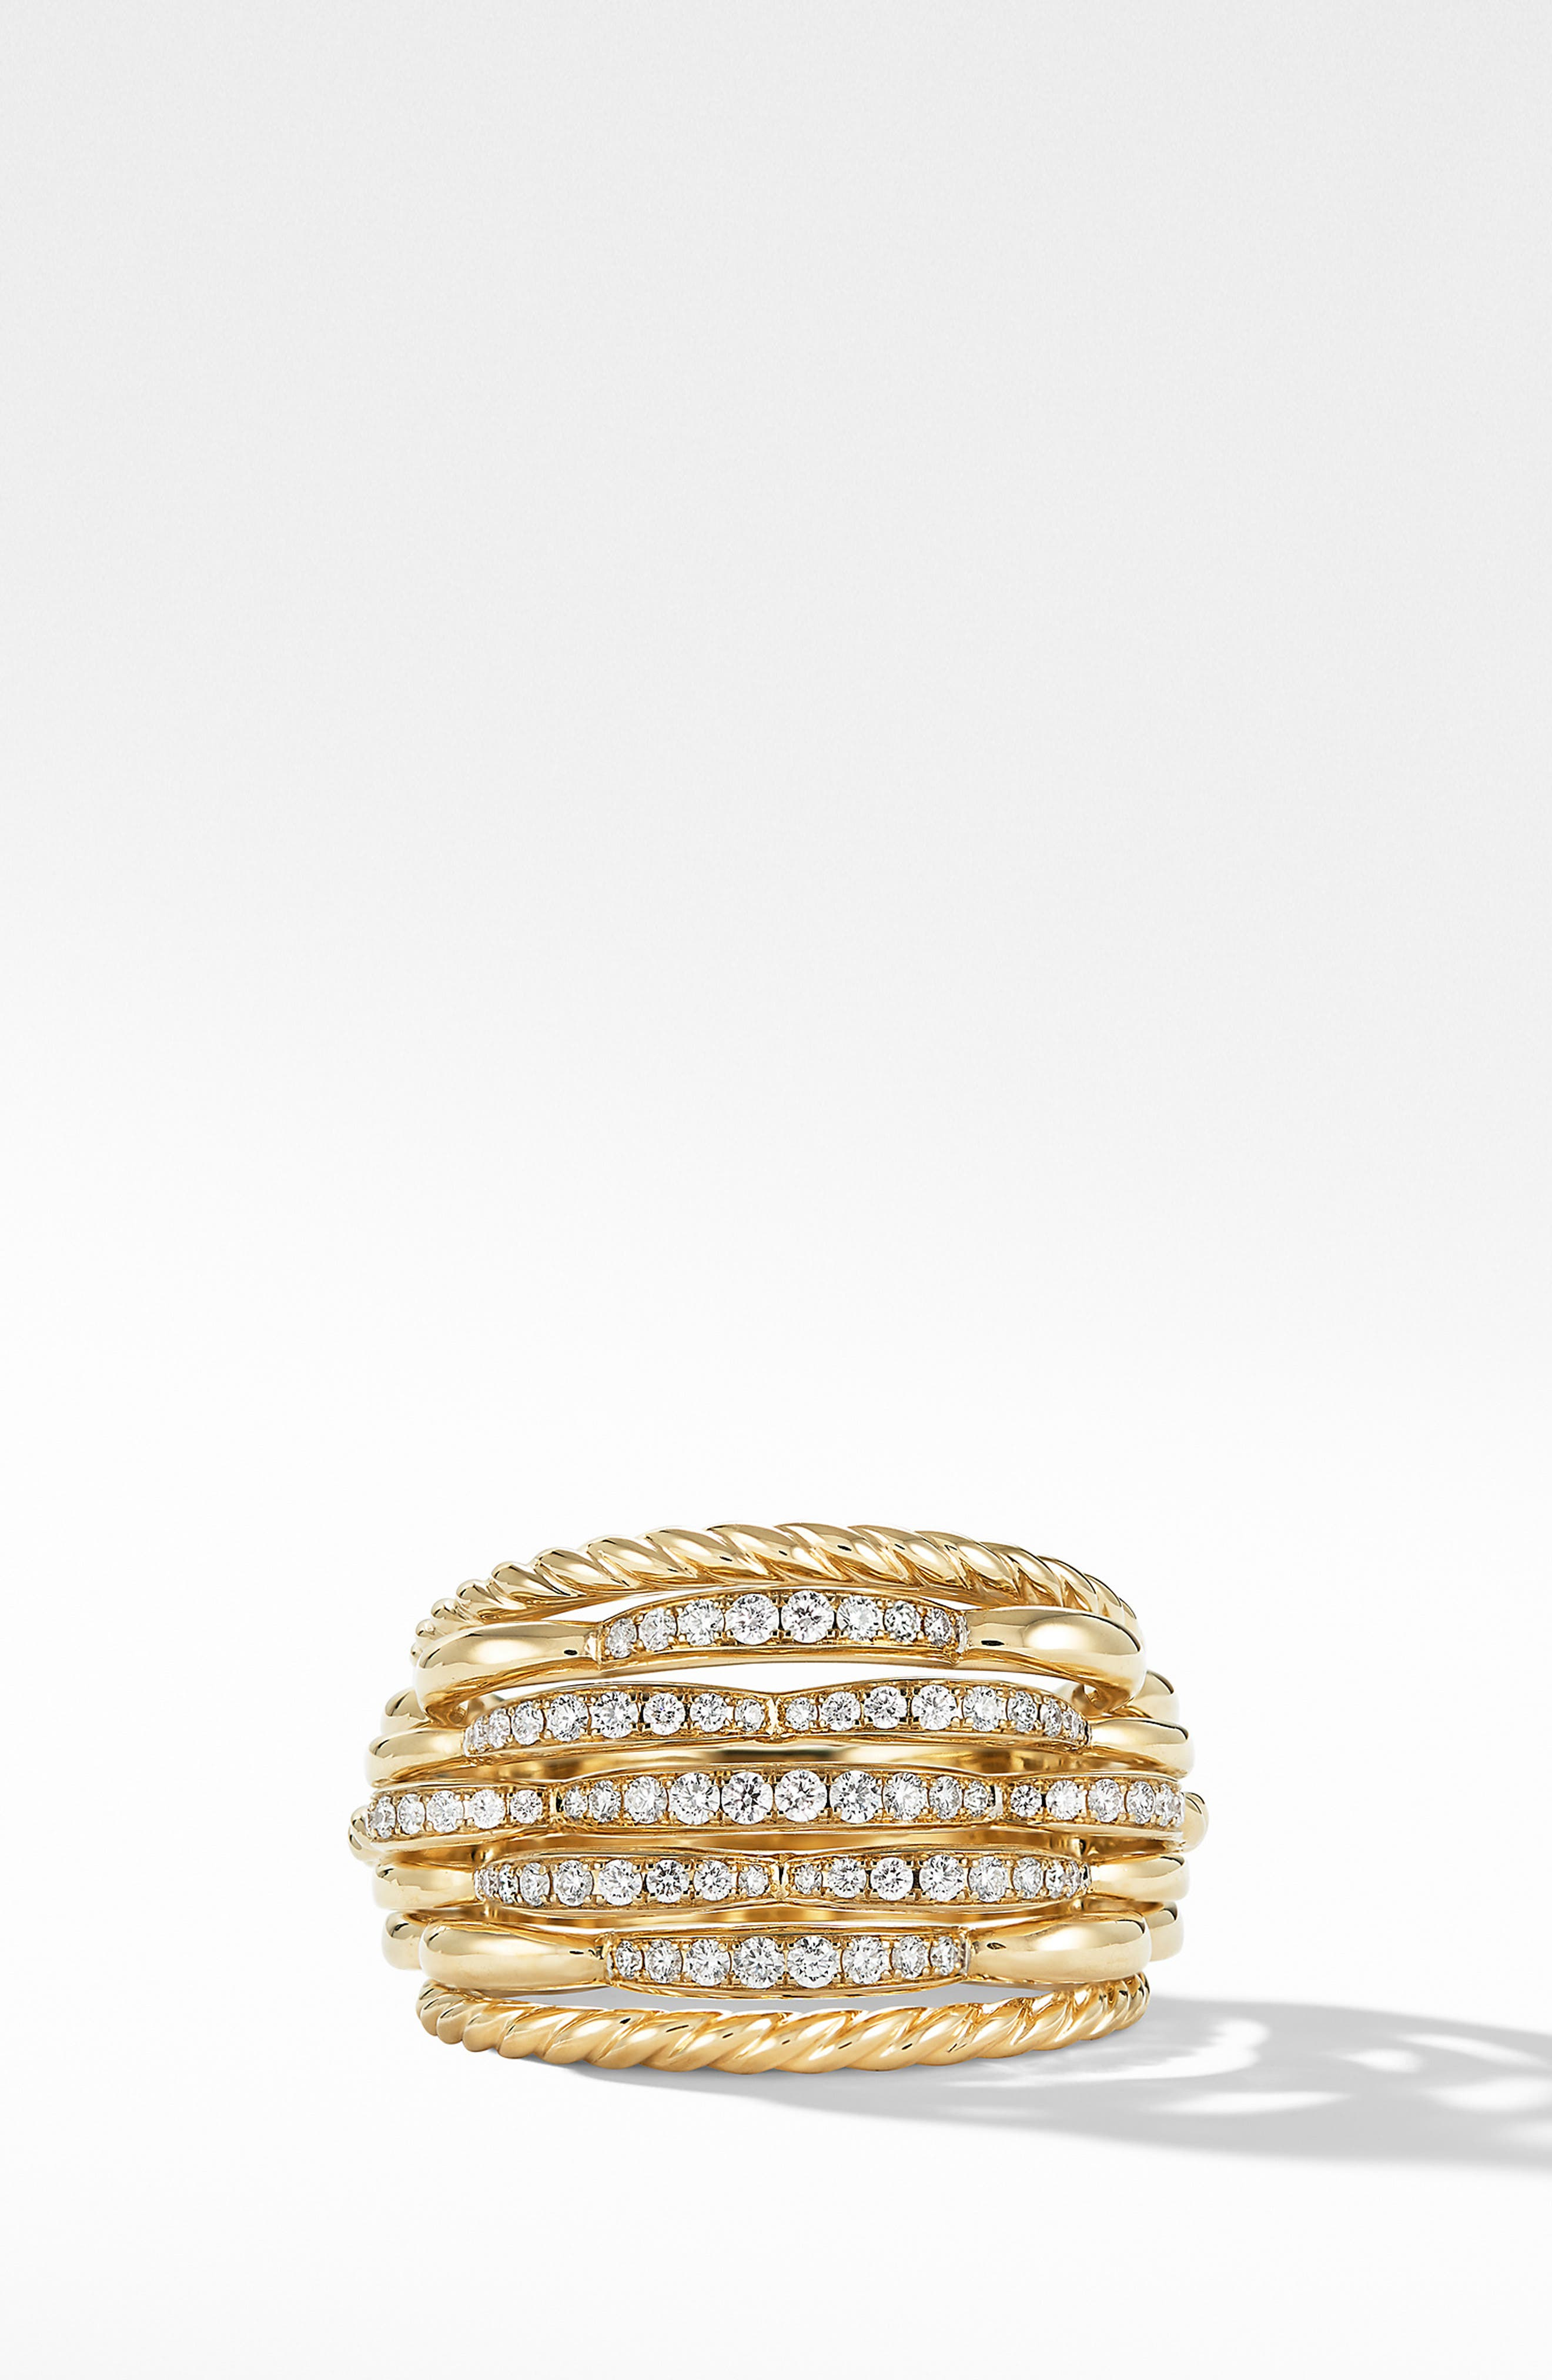 Tides Dome Ring with Diamonds,                             Alternate thumbnail 3, color,                             GOLD/ DIAMOND